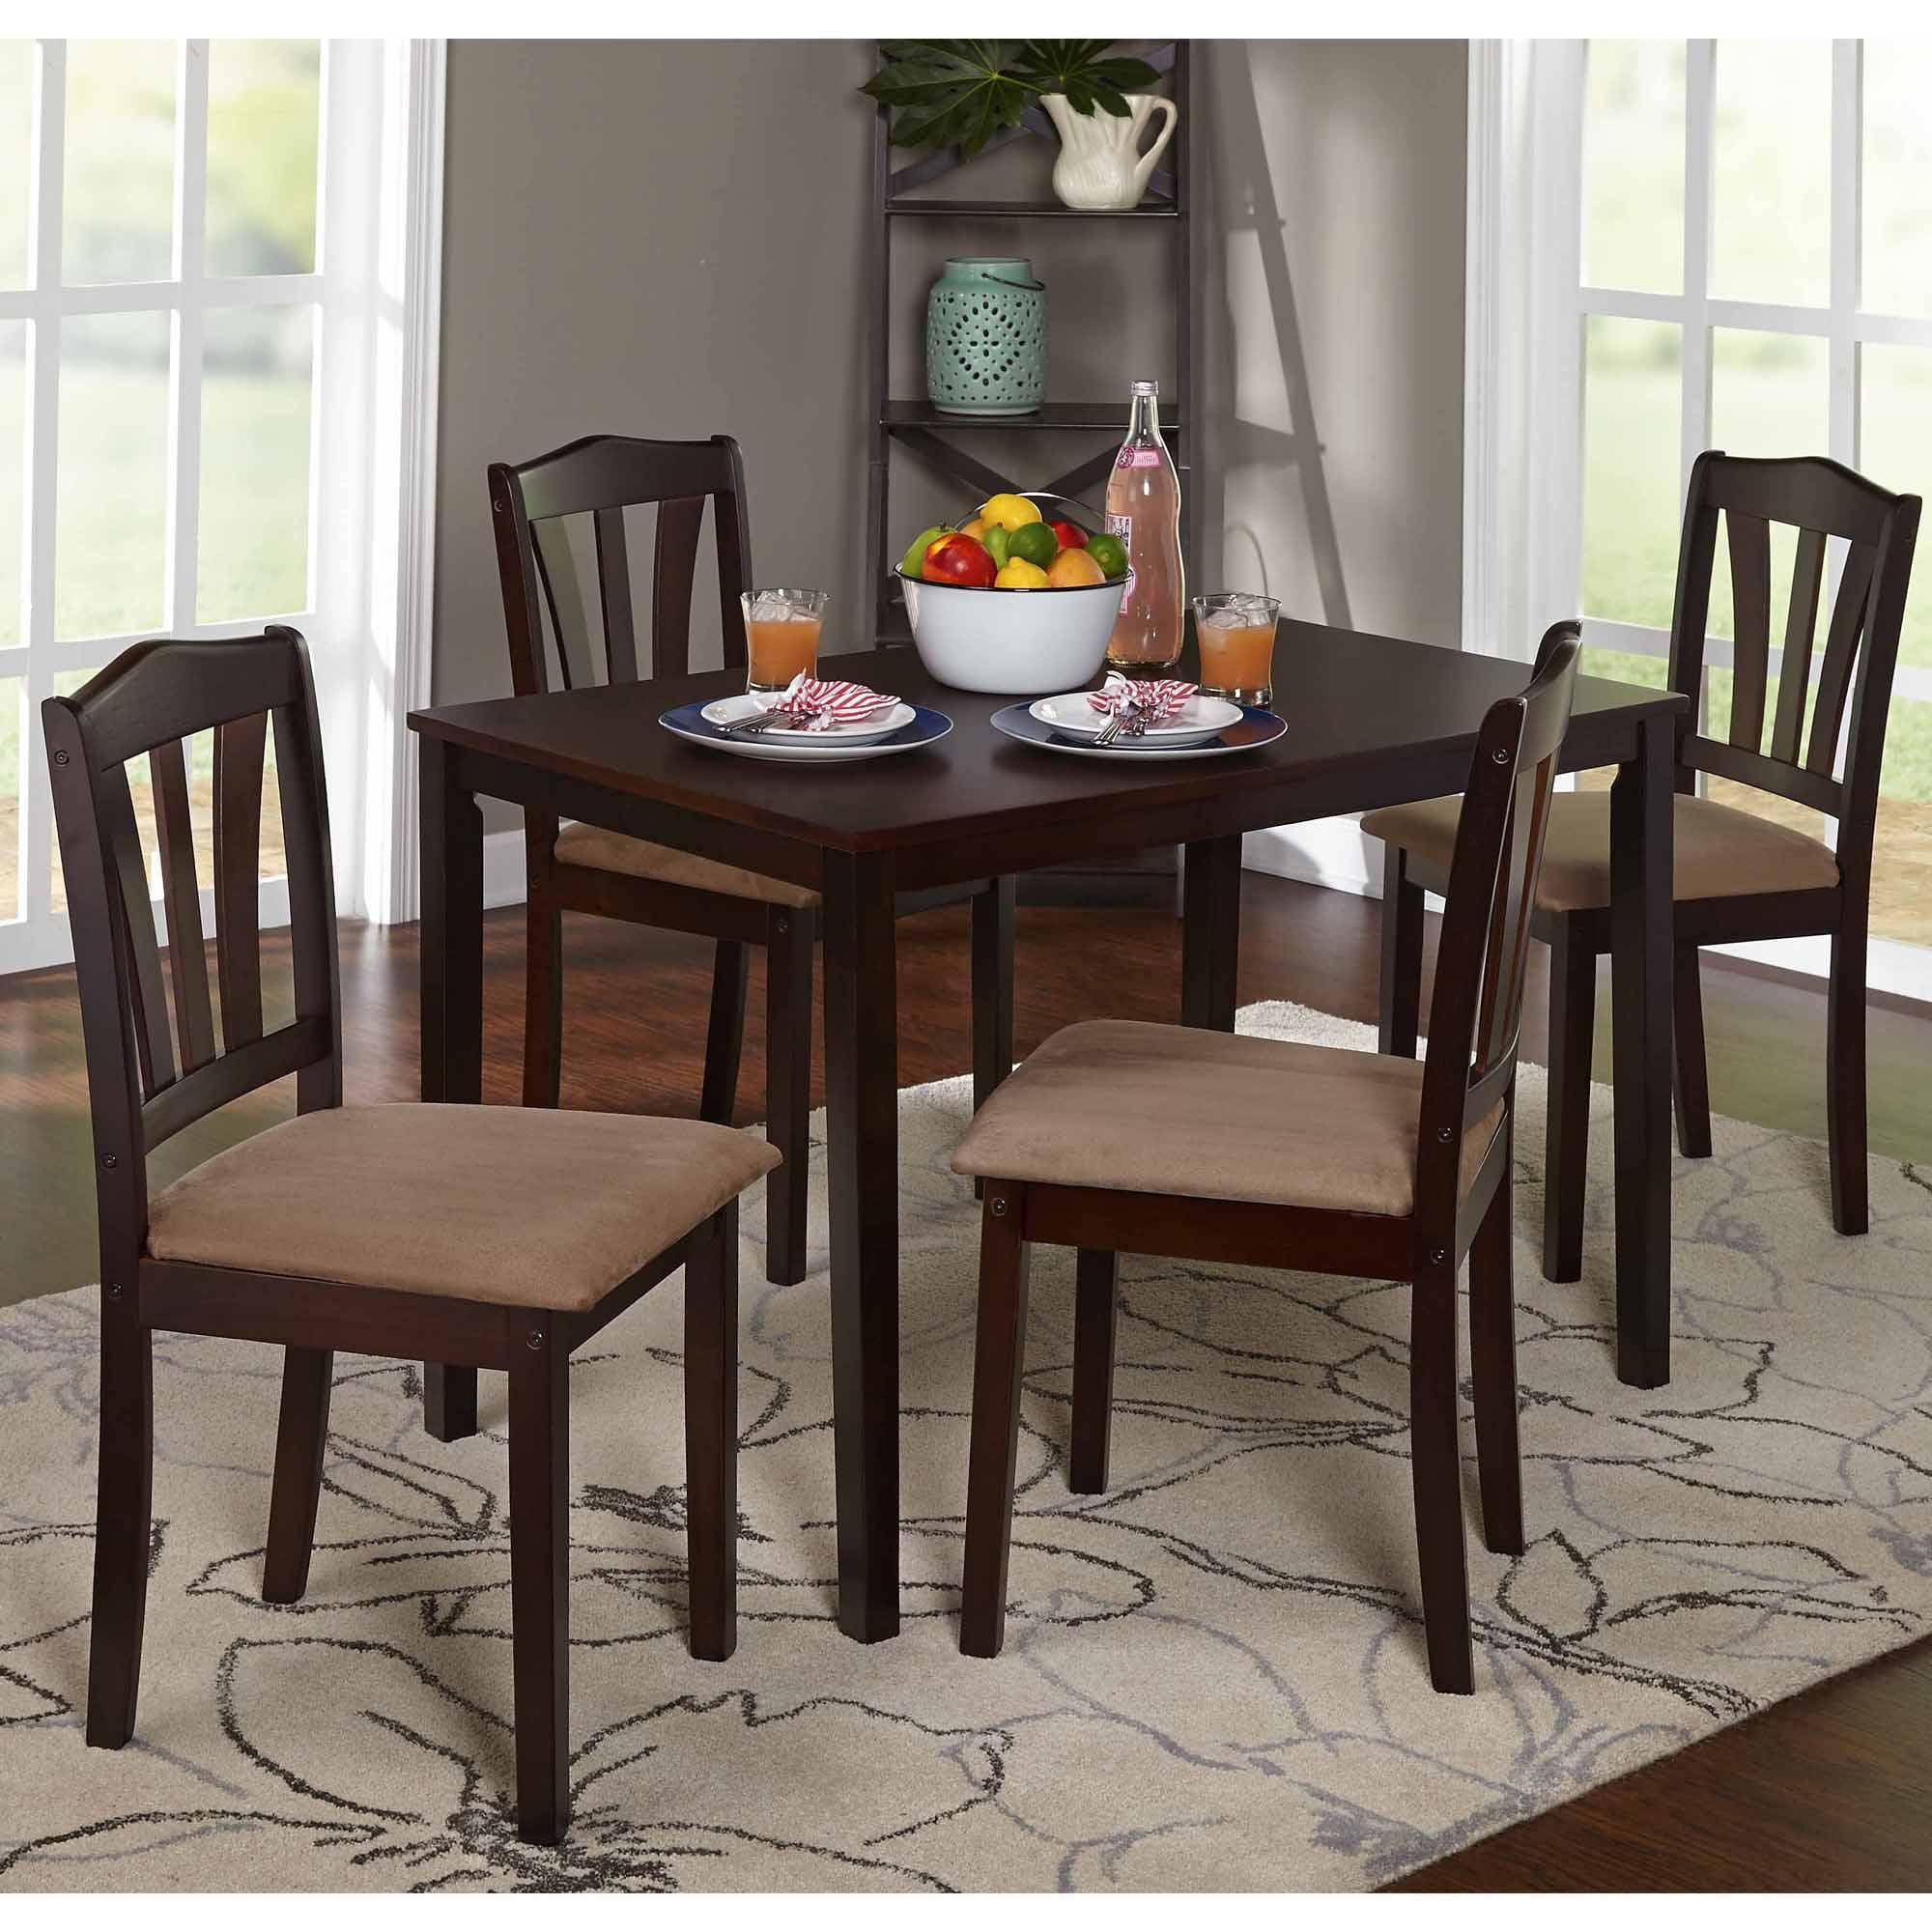 Attractive Dorel Living Shiloh 5 Piece Rustic Dining Set   Walmart.com